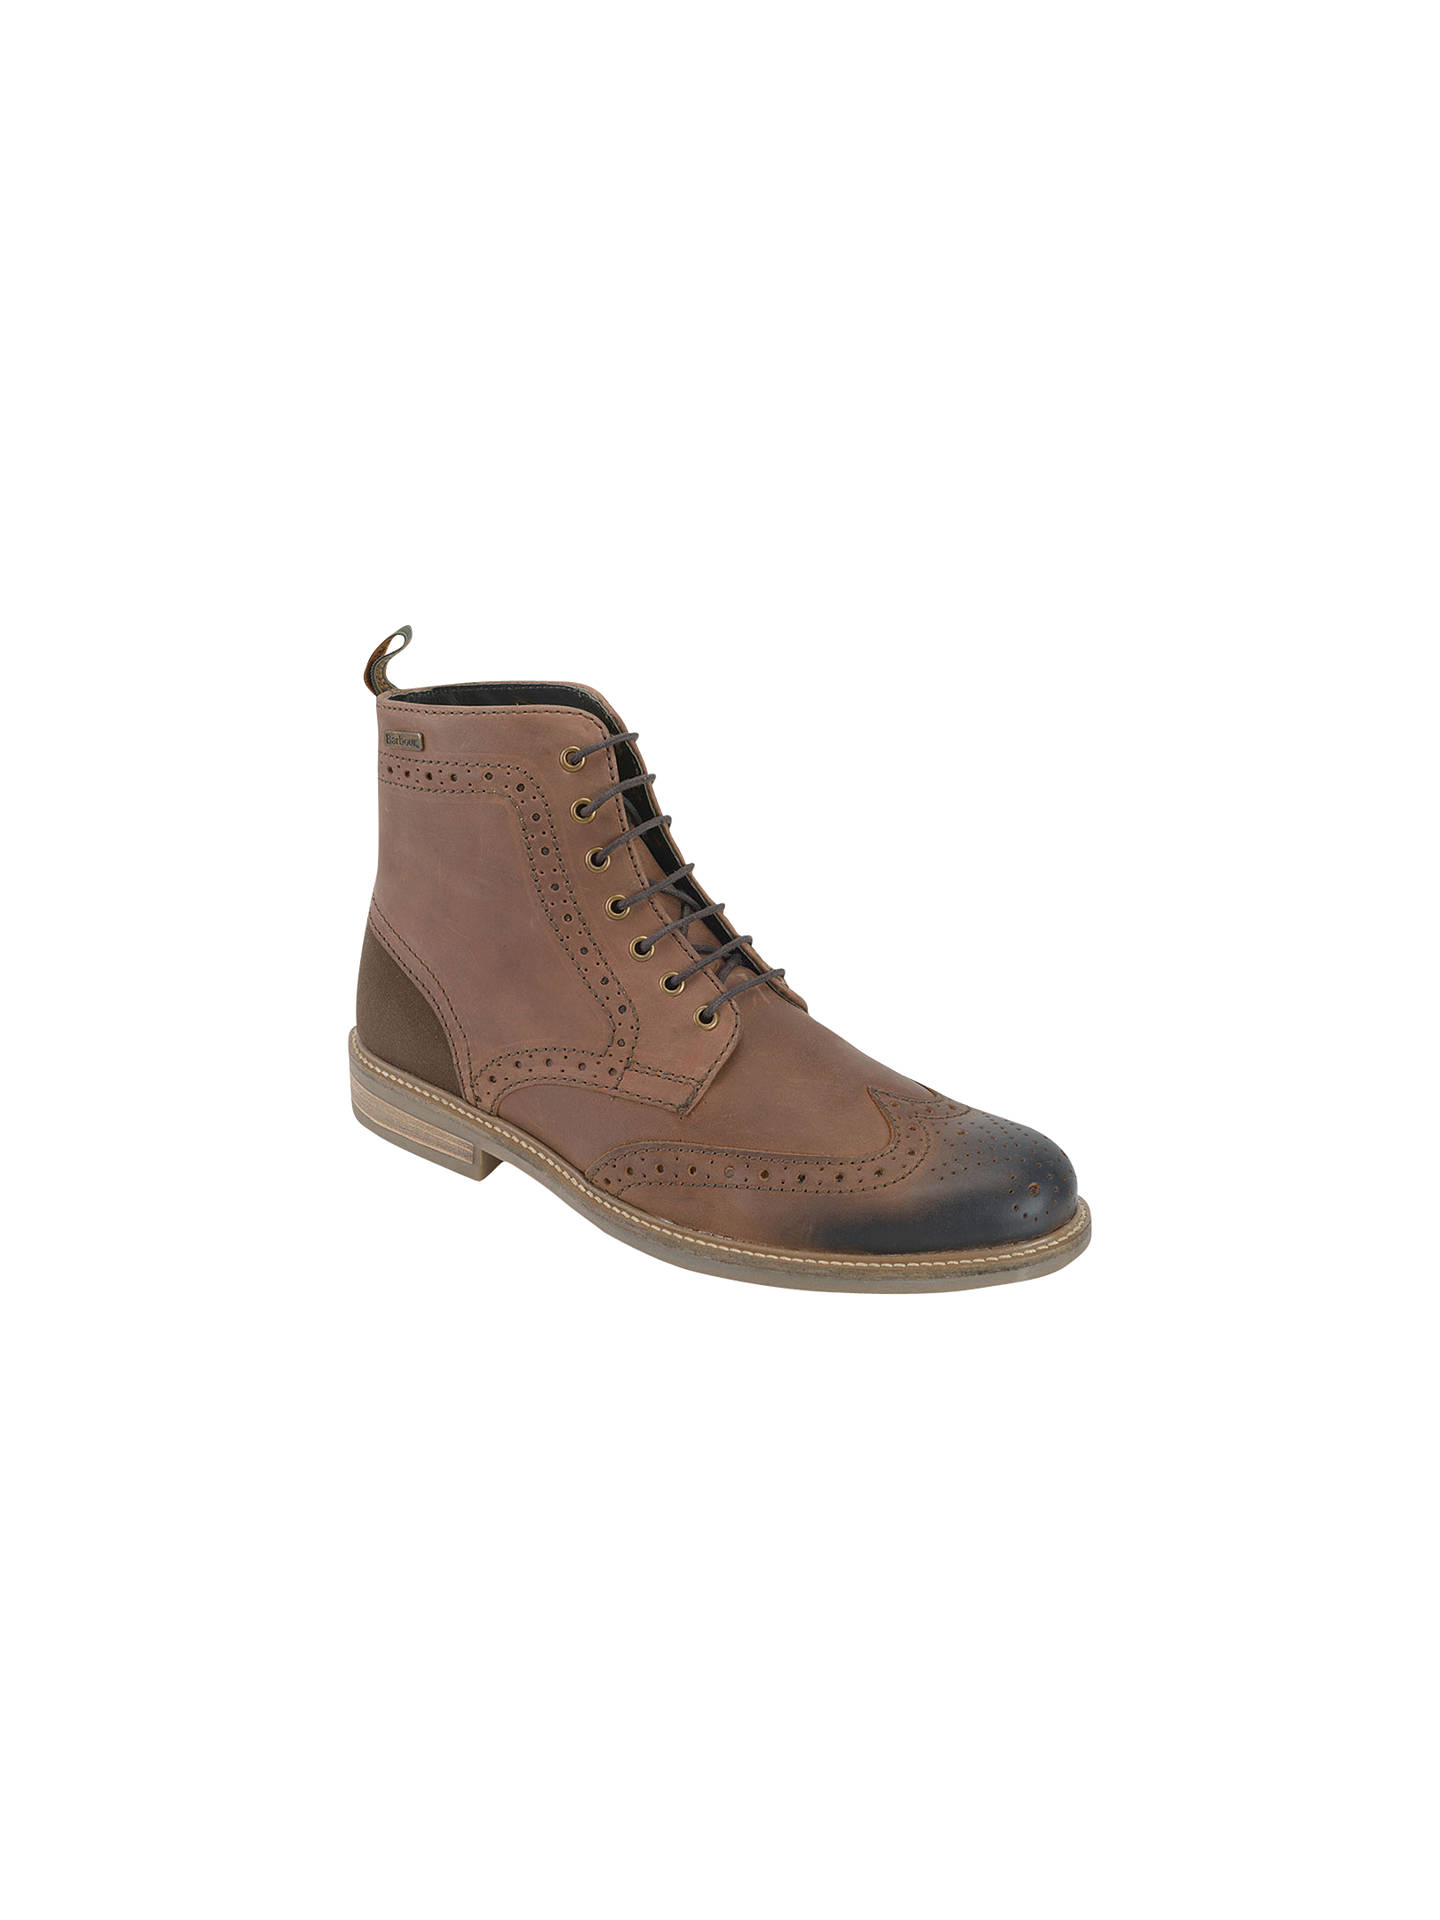 8c1e36a9eeb Barbour Belsay Leather Brogue Boots, Dark Tan at John Lewis & Partners